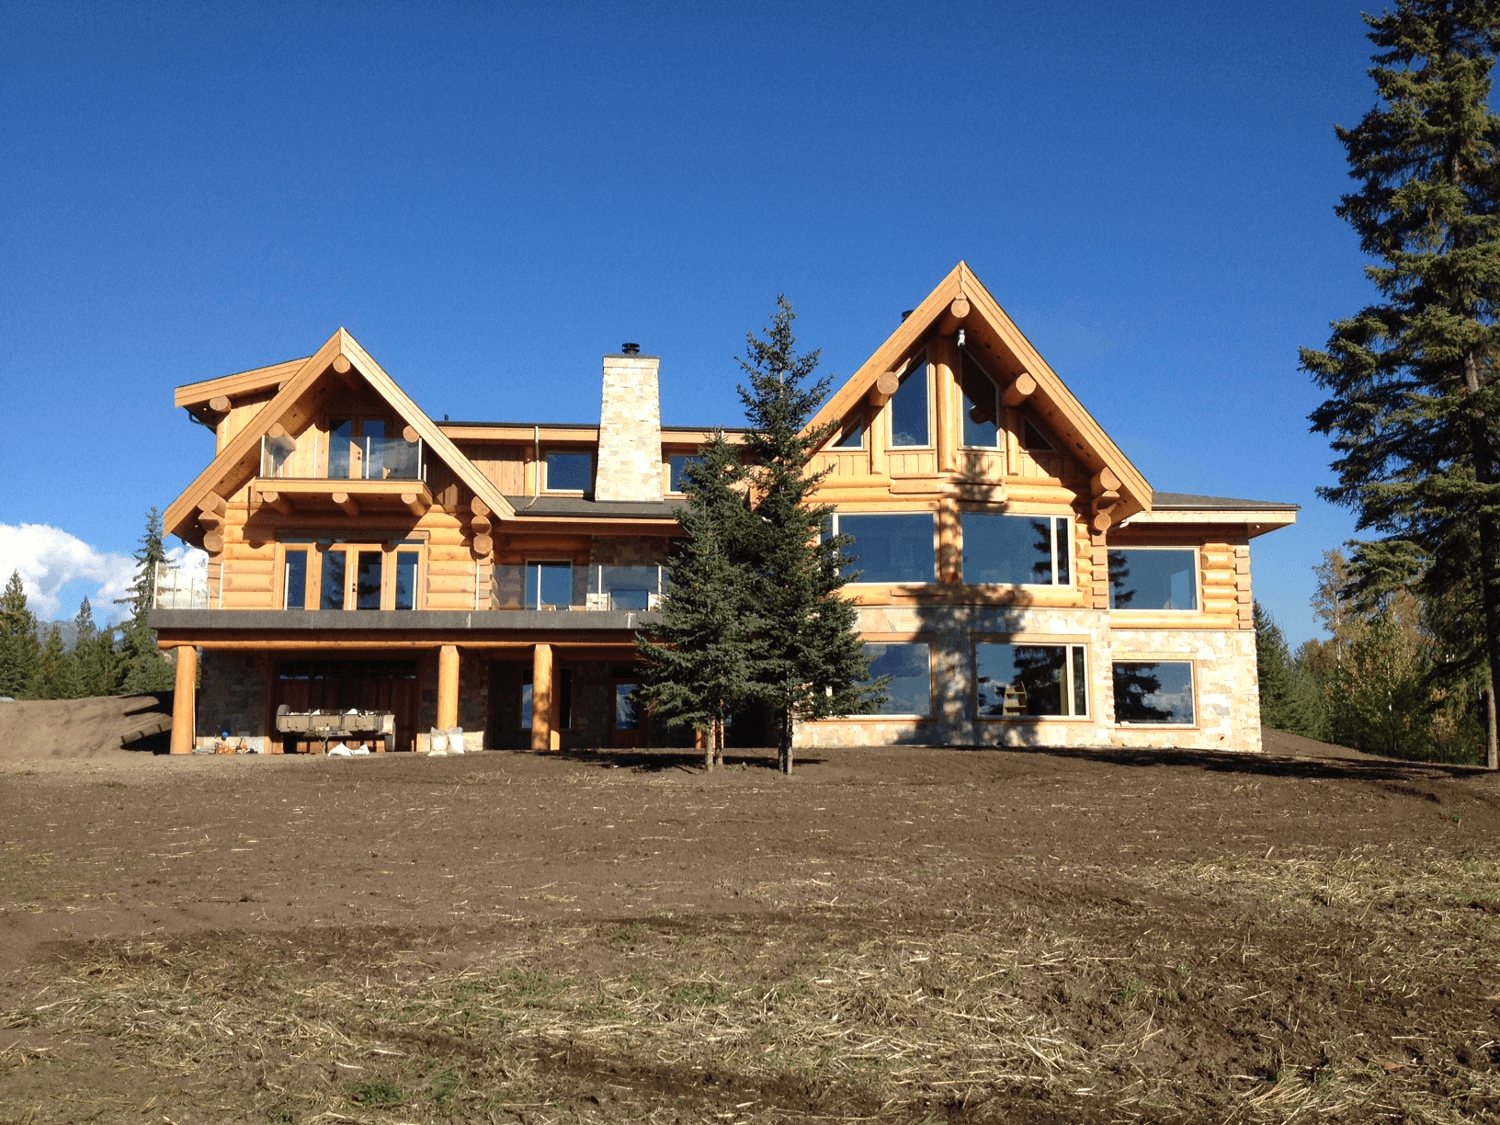 Log House with exterior Fire Place